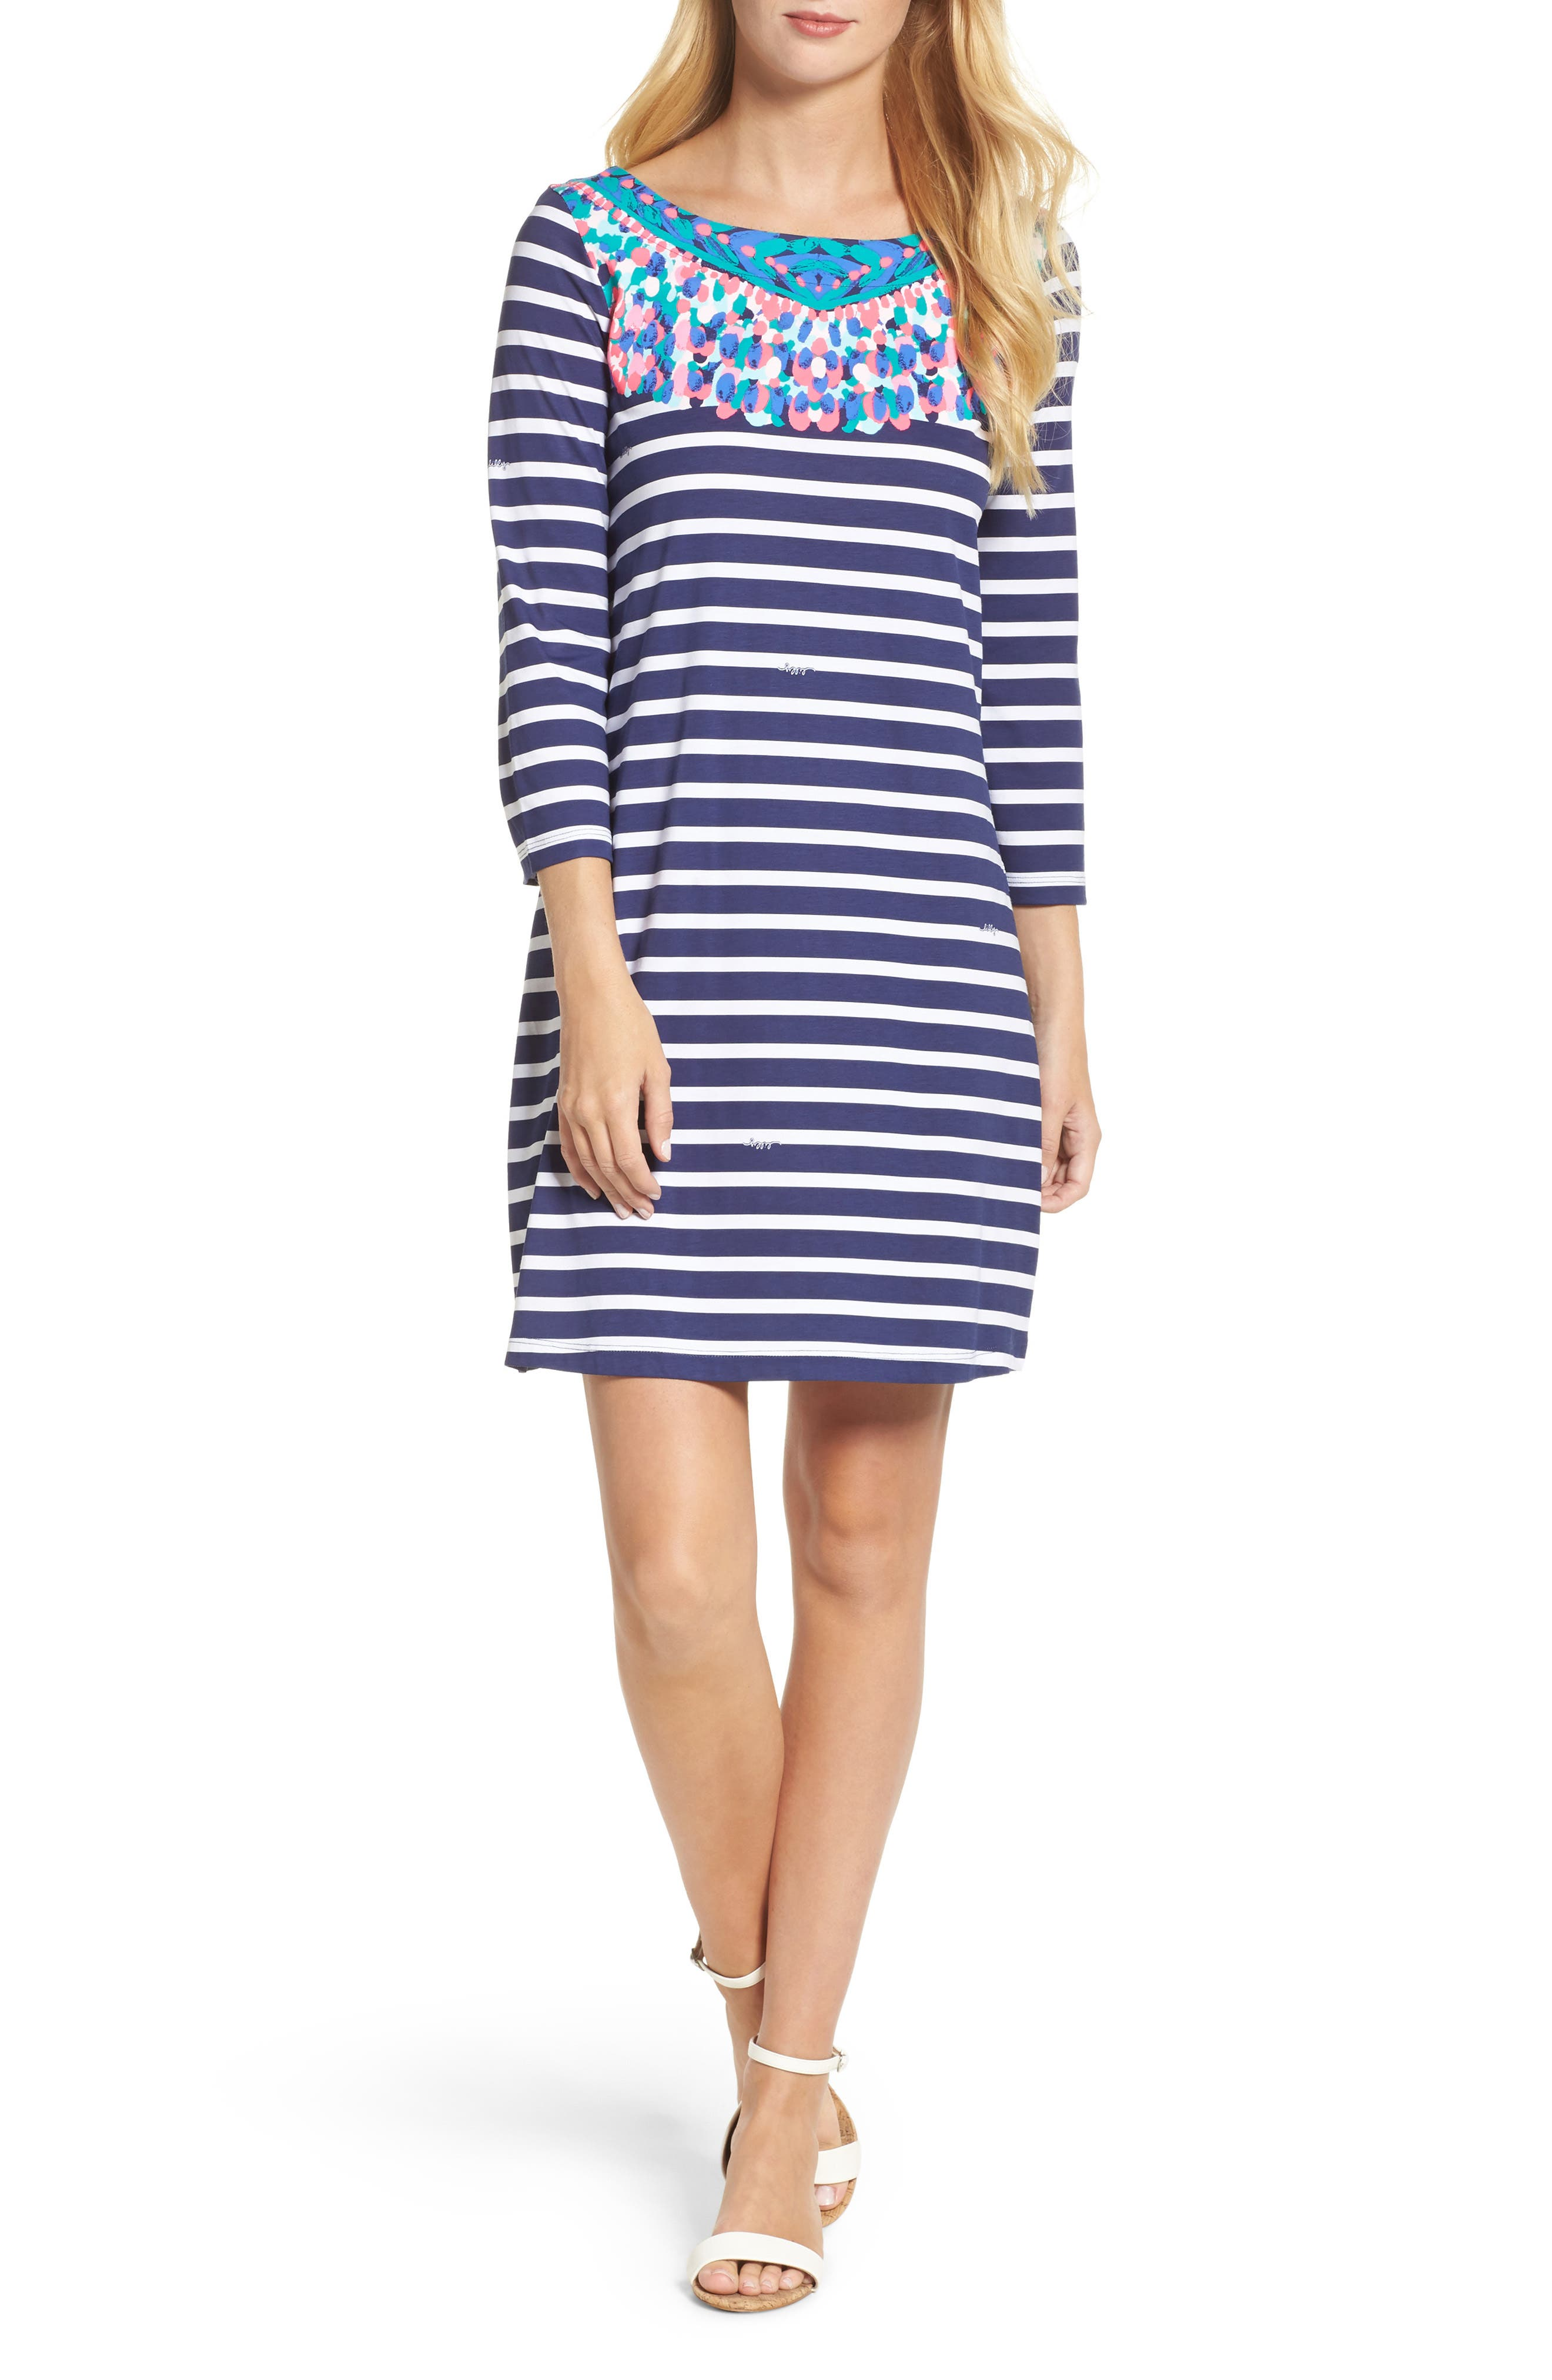 Bay Shift Dress,                             Main thumbnail 1, color,                             Bright Navy Island Medallion